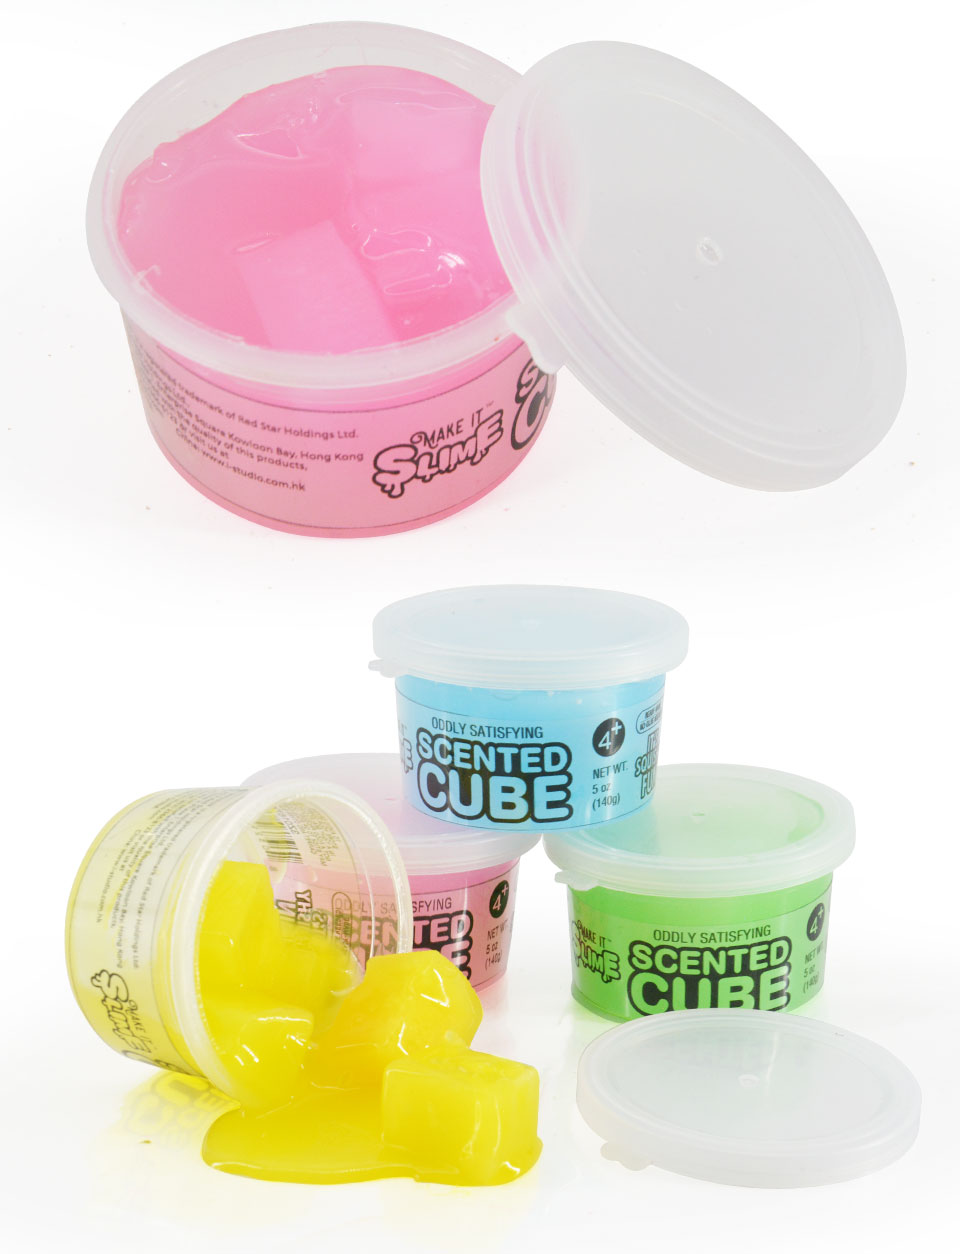 Novelty creative magical Crystal Clear Scented Slime Putty Cool Jelly Cubes Foam Slime Kit